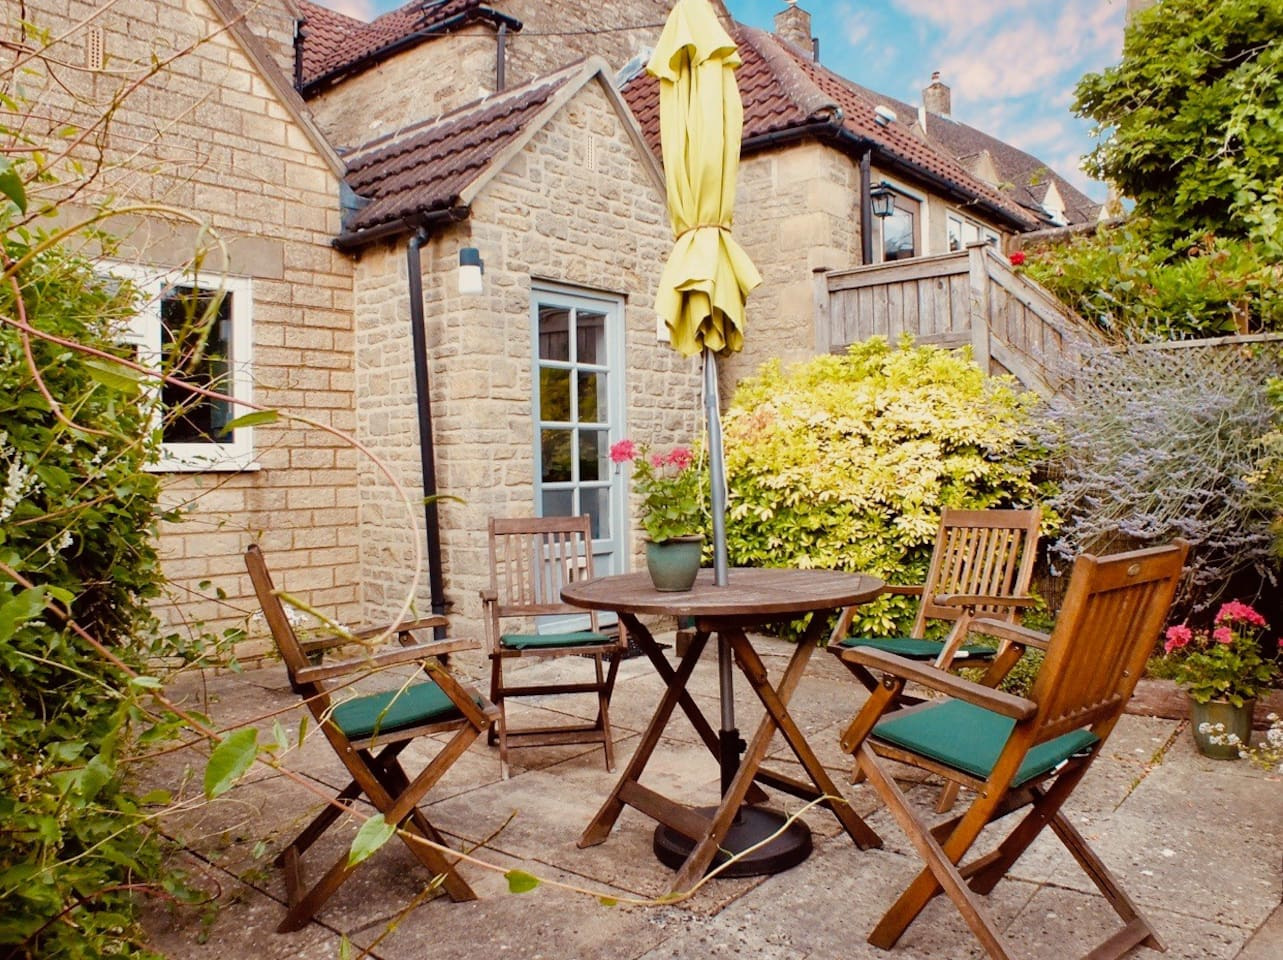 Visit the The Art House, Tetbury, and be the first guests in this refurbished, newly listed holiday home from home. Enjoy the town, the Cotswolds and peace and quiet in the cottage and the private sunny courtyard.